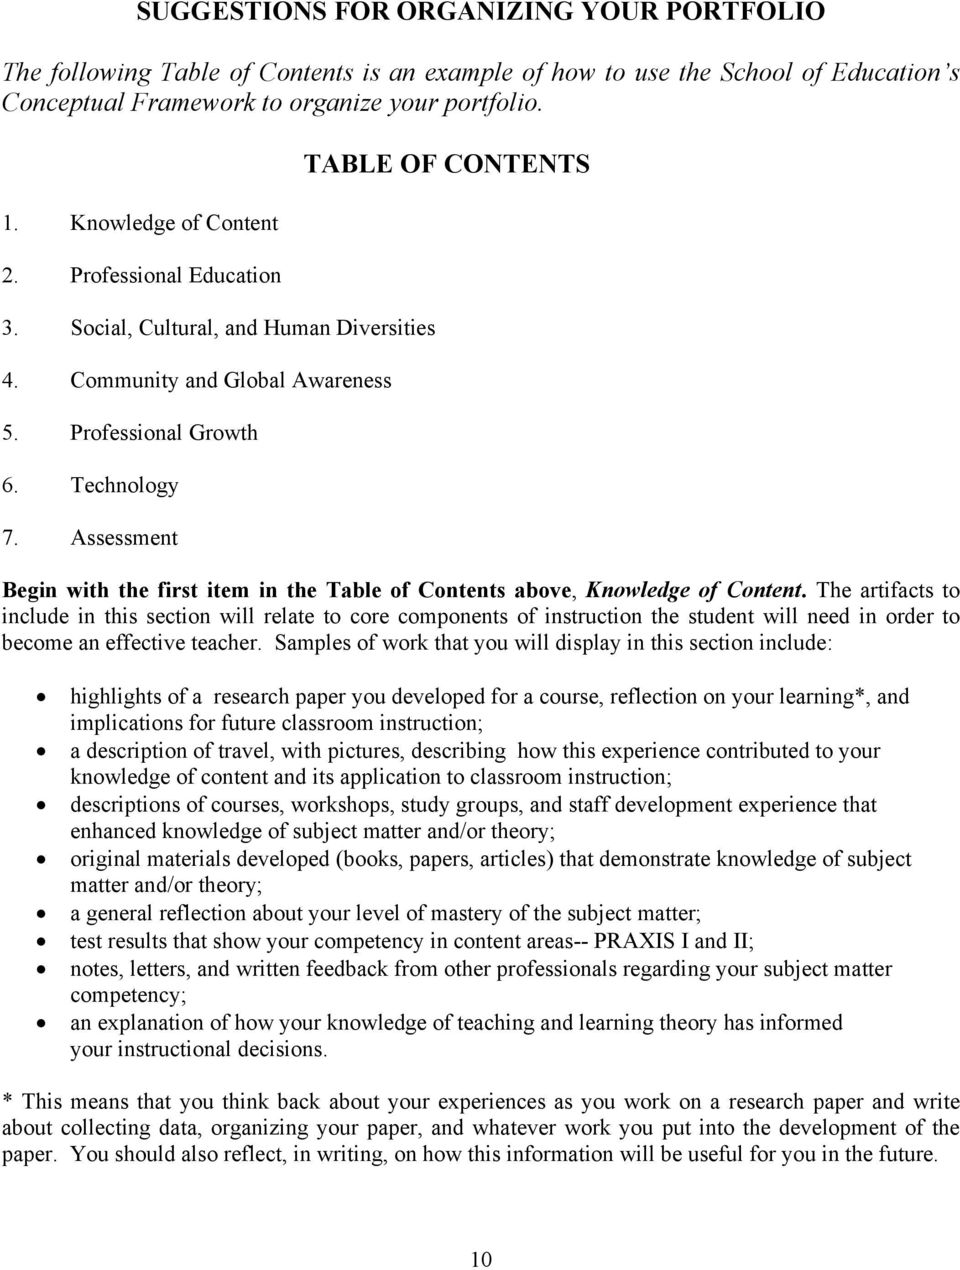 Assessment TABLE OF CONTENTS Begin with the first item in the Table of Contents above, Knowledge of Content.